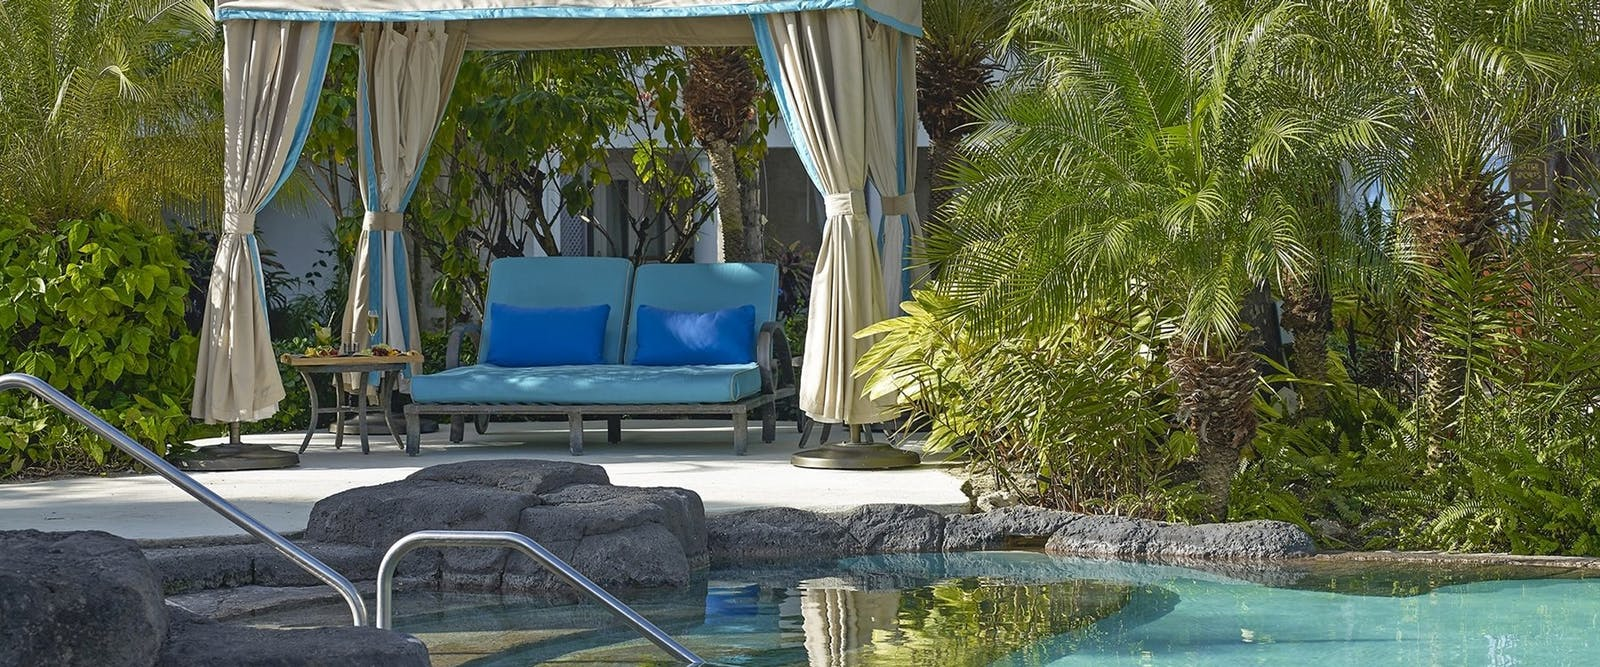 Poolside Cabana at Colony Club by Elegant Hotels, Barbados, Caribbean